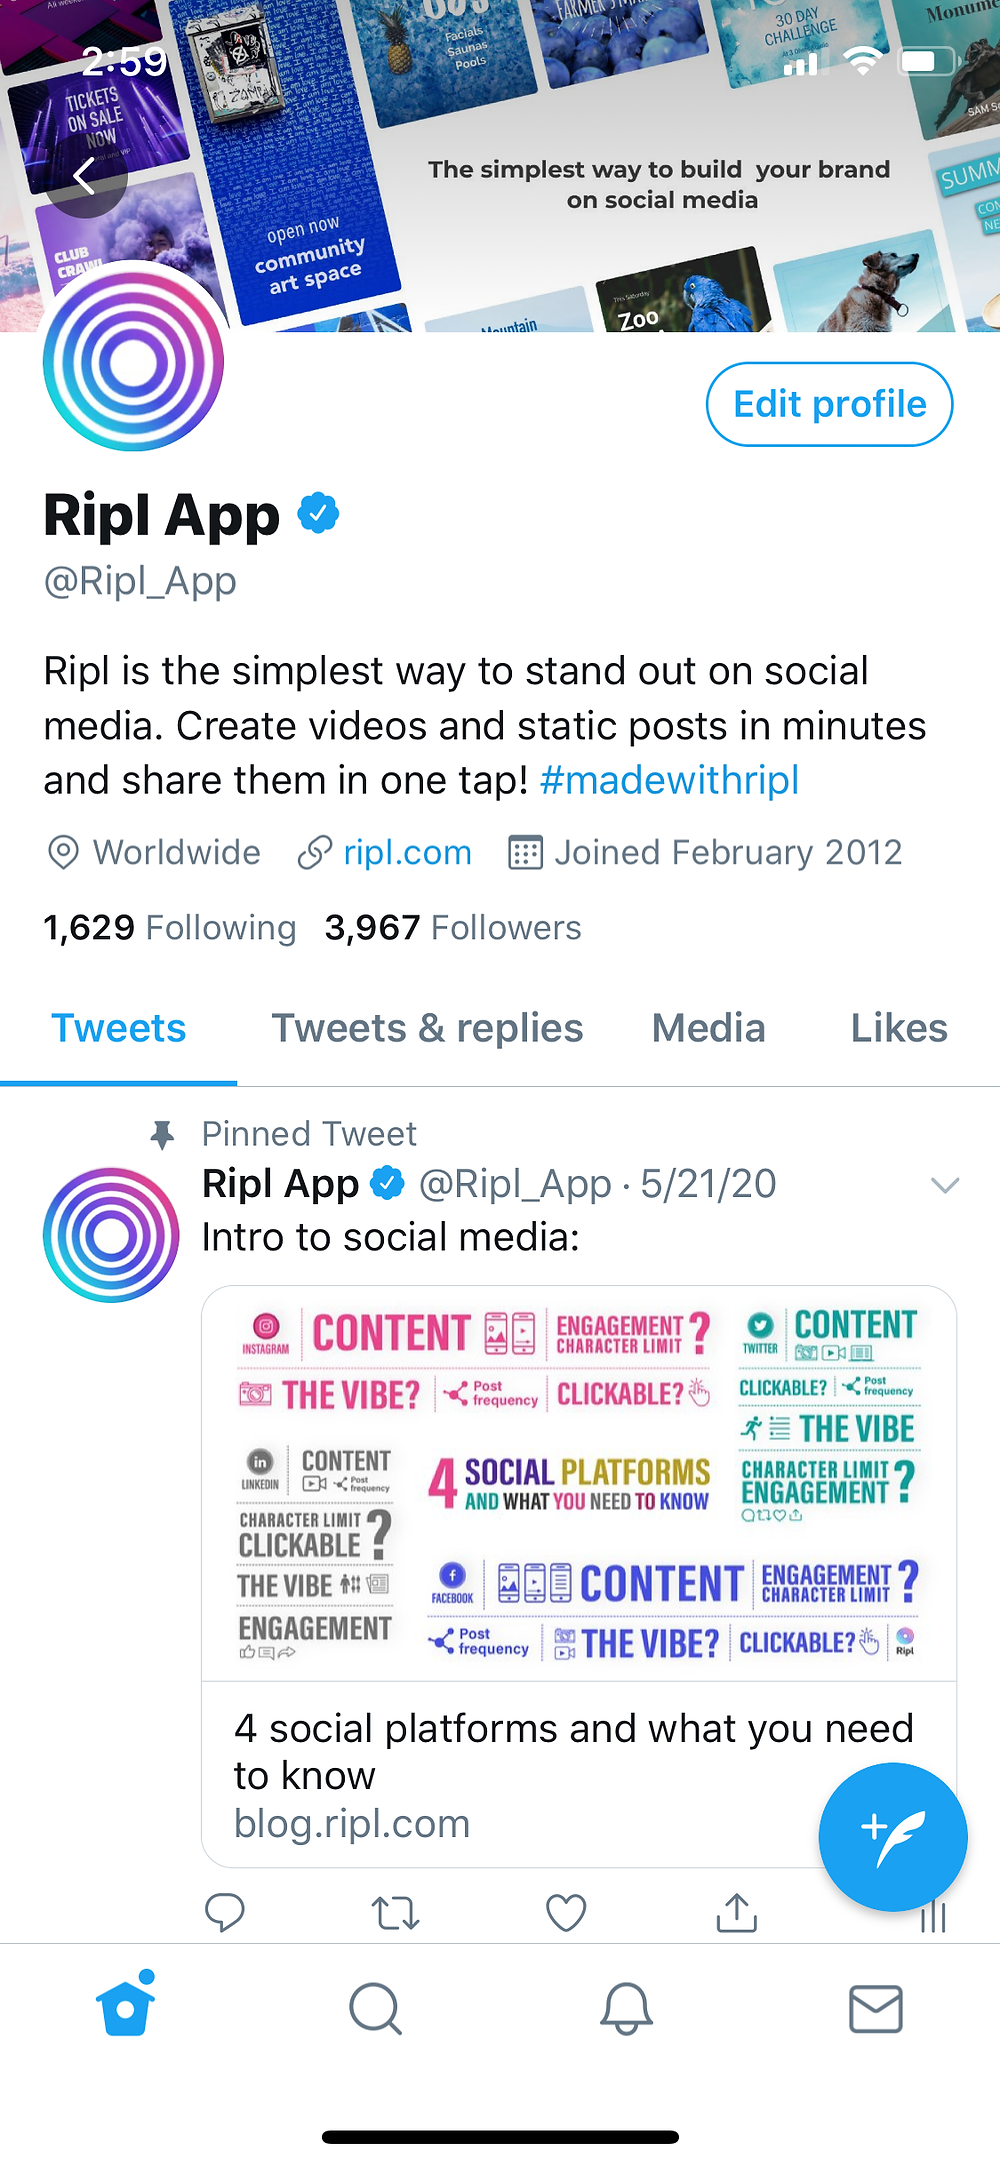 The Ripl Twitter page includes all necessary brand information including logo, banner, bio, website link, etc.